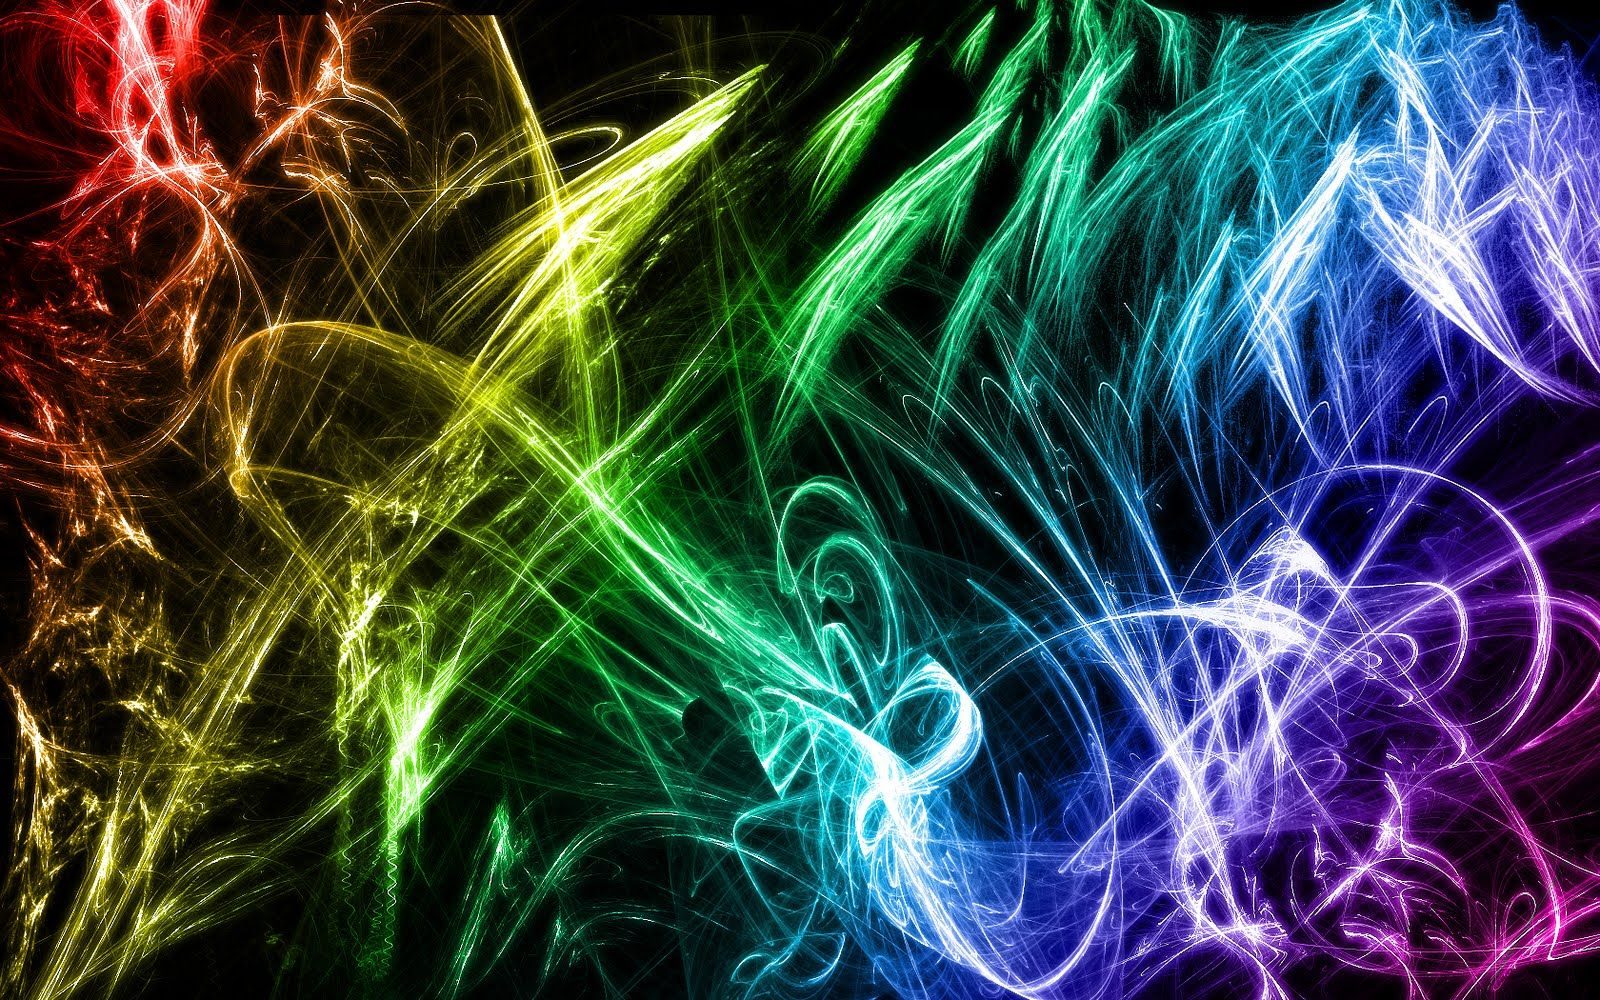 Abstract Wallpapers Hq 1680x1050 Hd Desktop Wallpaper